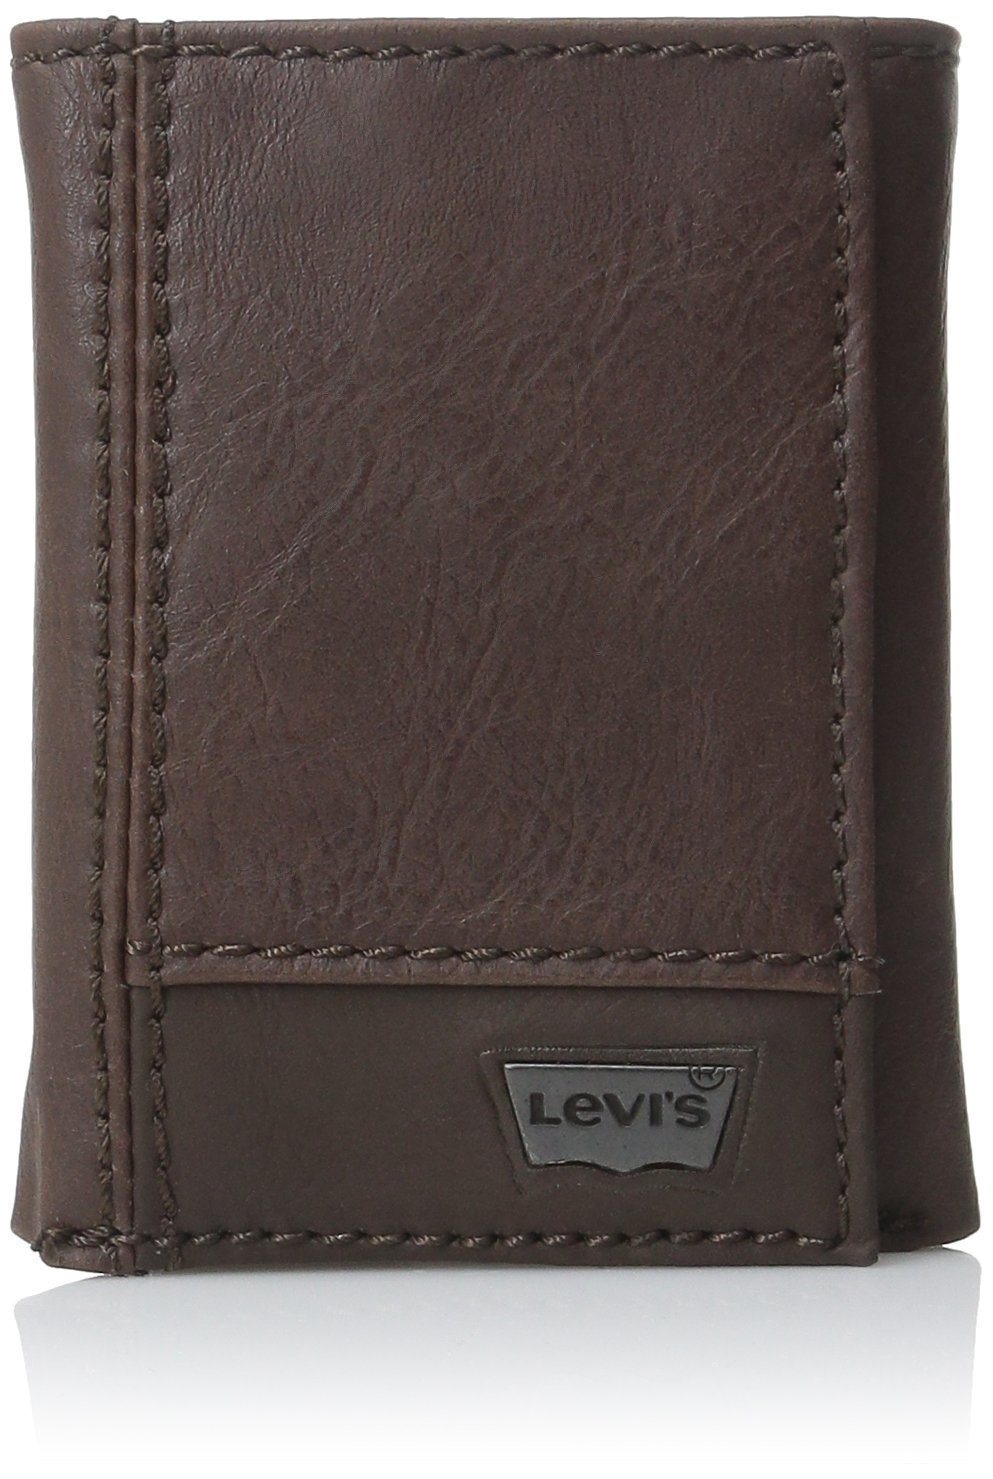 Levis Mens Trifold Wallet Leather